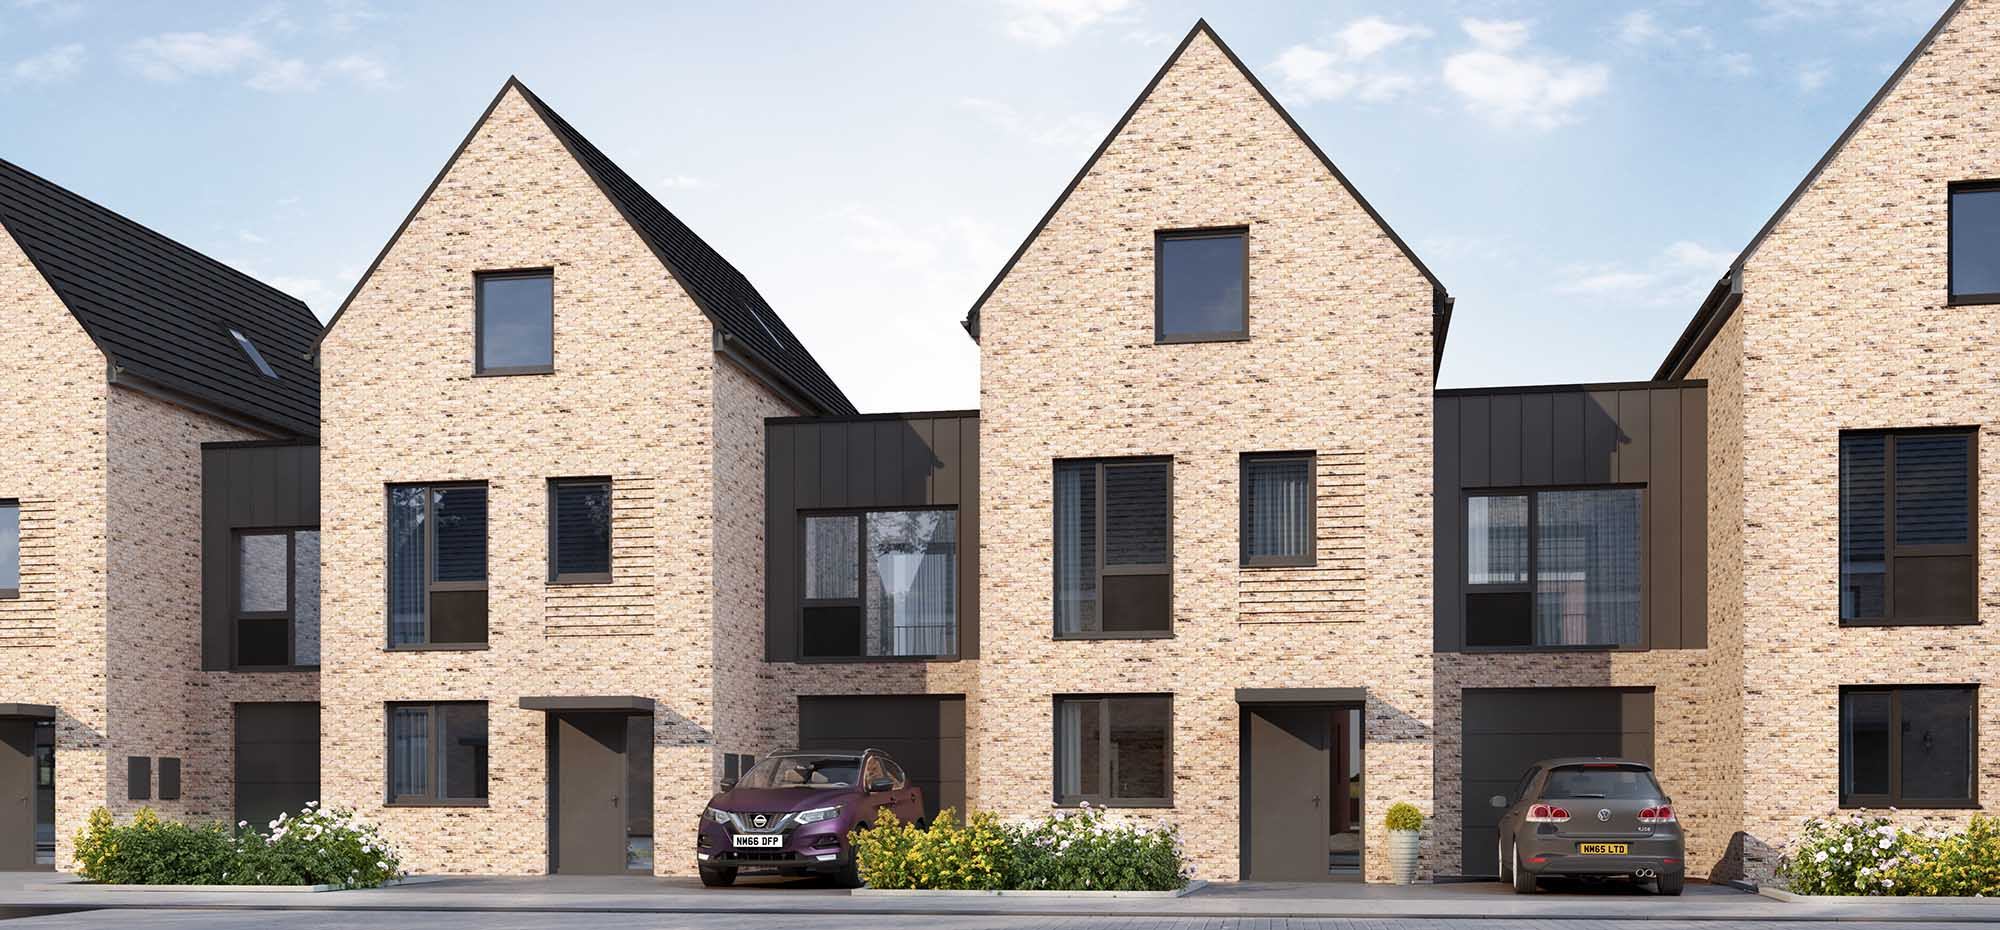 This image shows an external view of the Bellflower four bedroom, mid-townhouse from Shape Homes York.